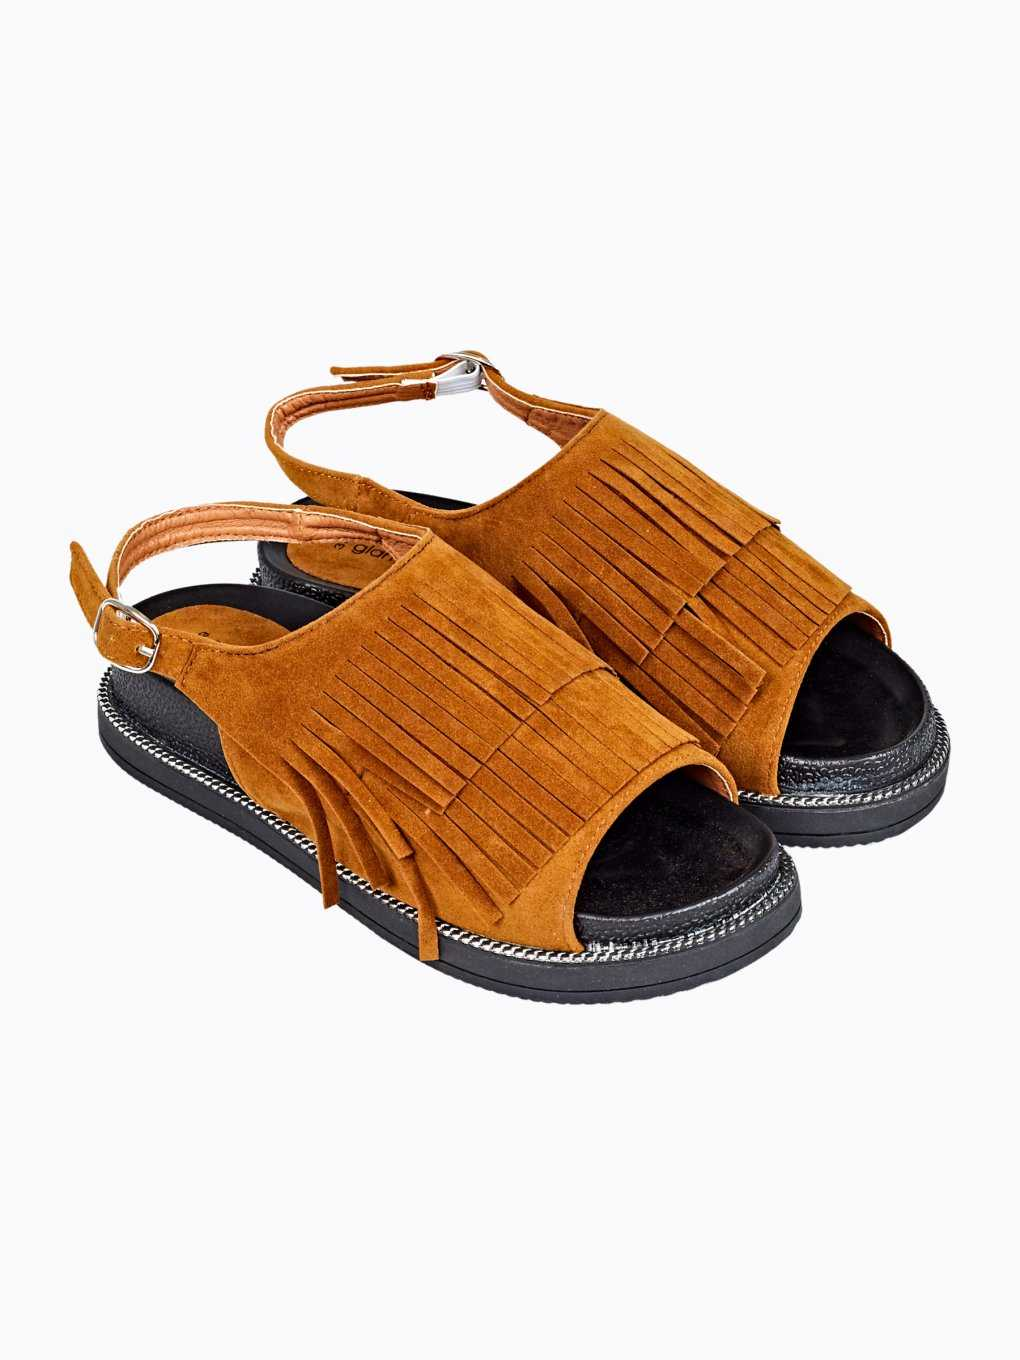 Sandals with fringes